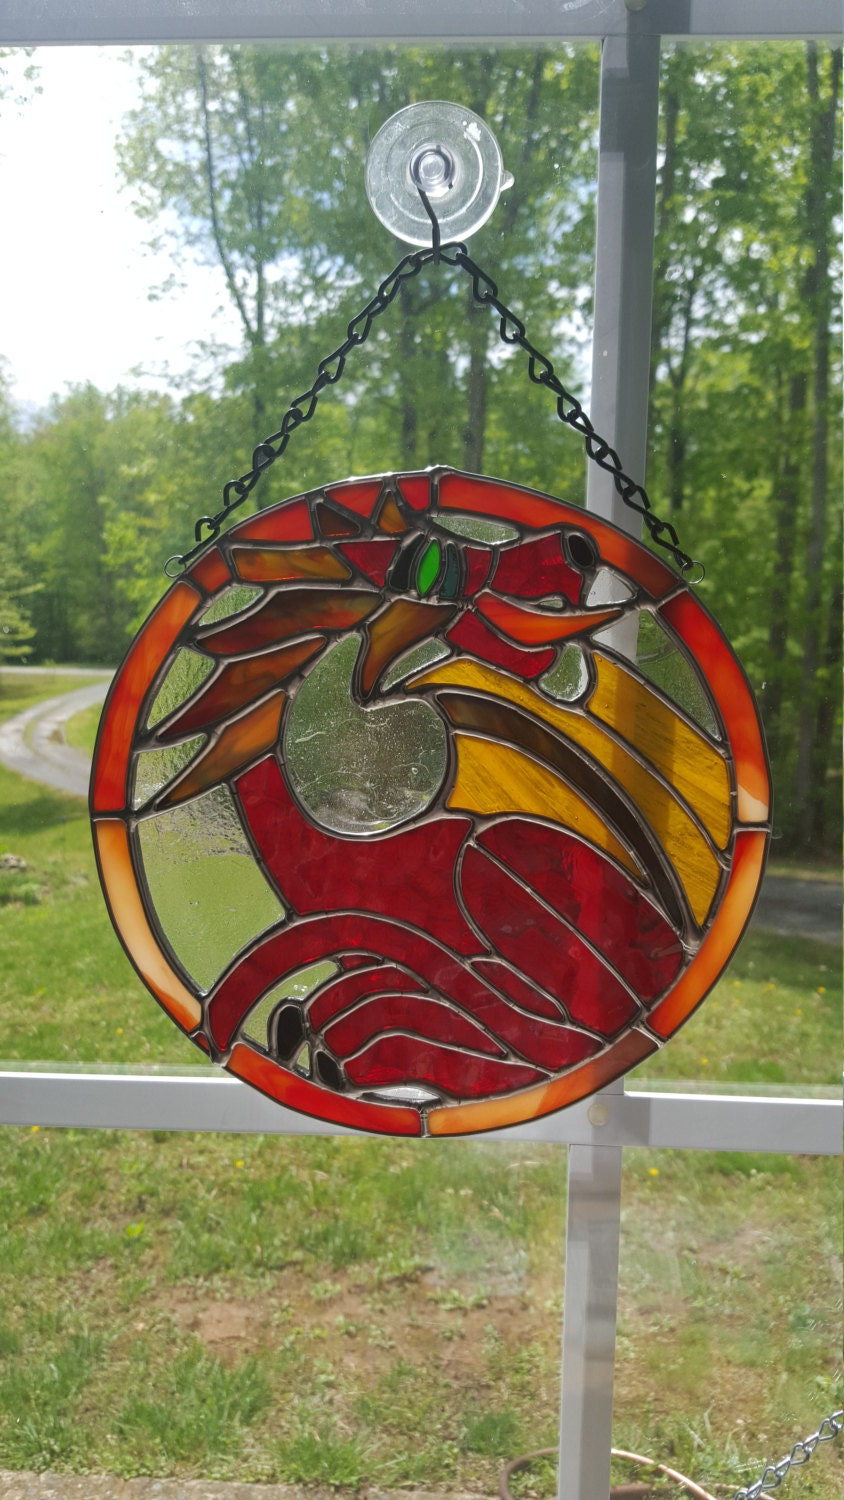 Red Stained Glass : Stained glass red fire breathing dragon